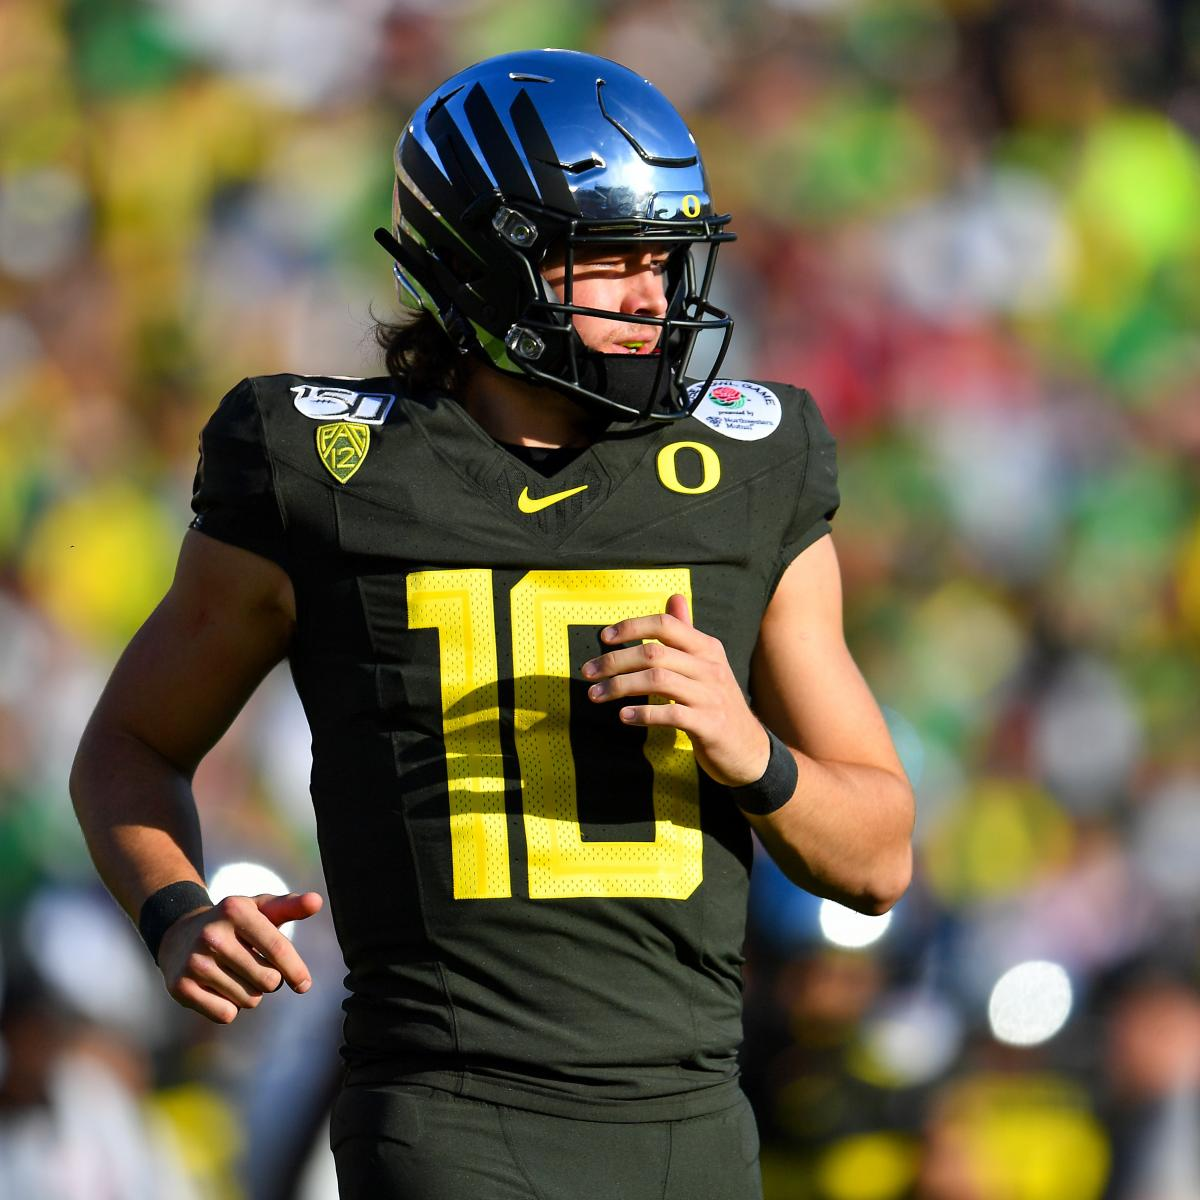 Oregon's Justin Herbert Ranked 1st Ahead of LSU's Joe Burrow by Anonymous Scout